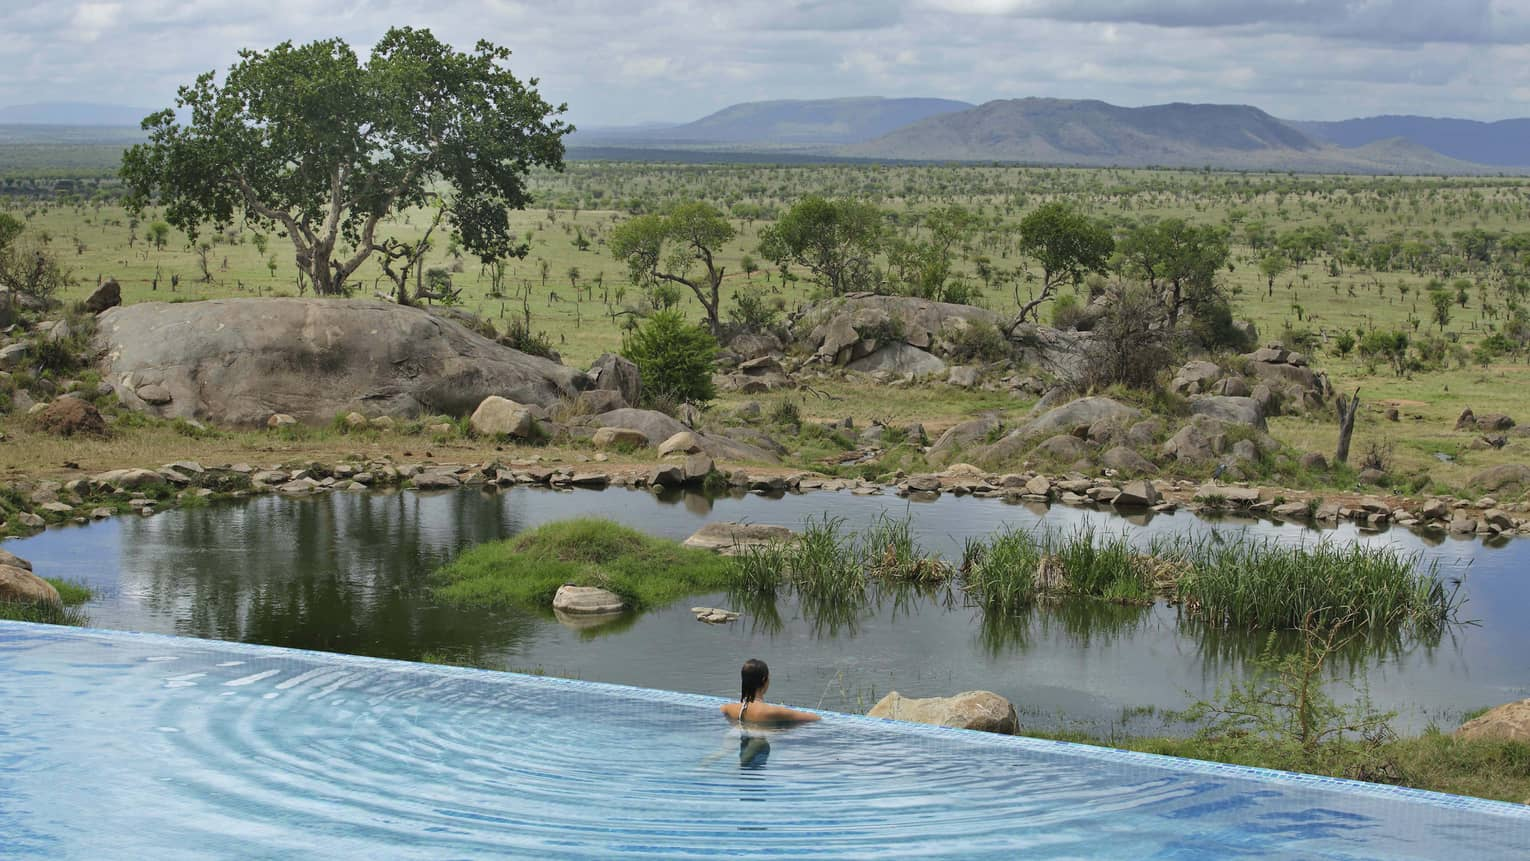 Woman stands at edge of infinity pool overlooking animal watering hole